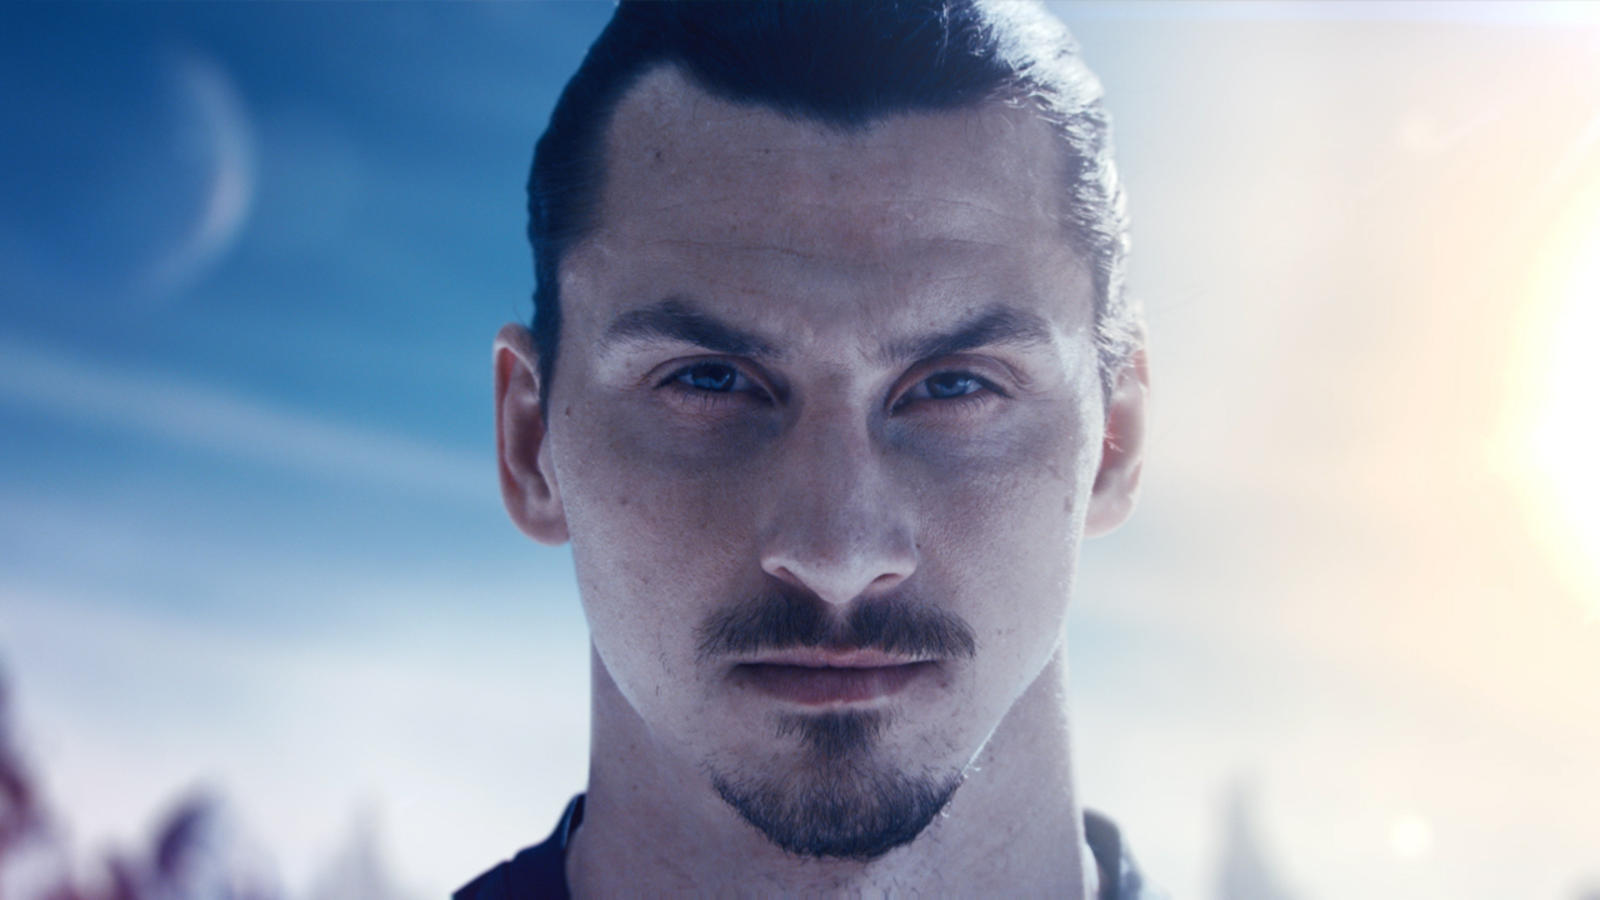 Zlatan Ibrahimovic Nike Images Is Cool Wallpapers